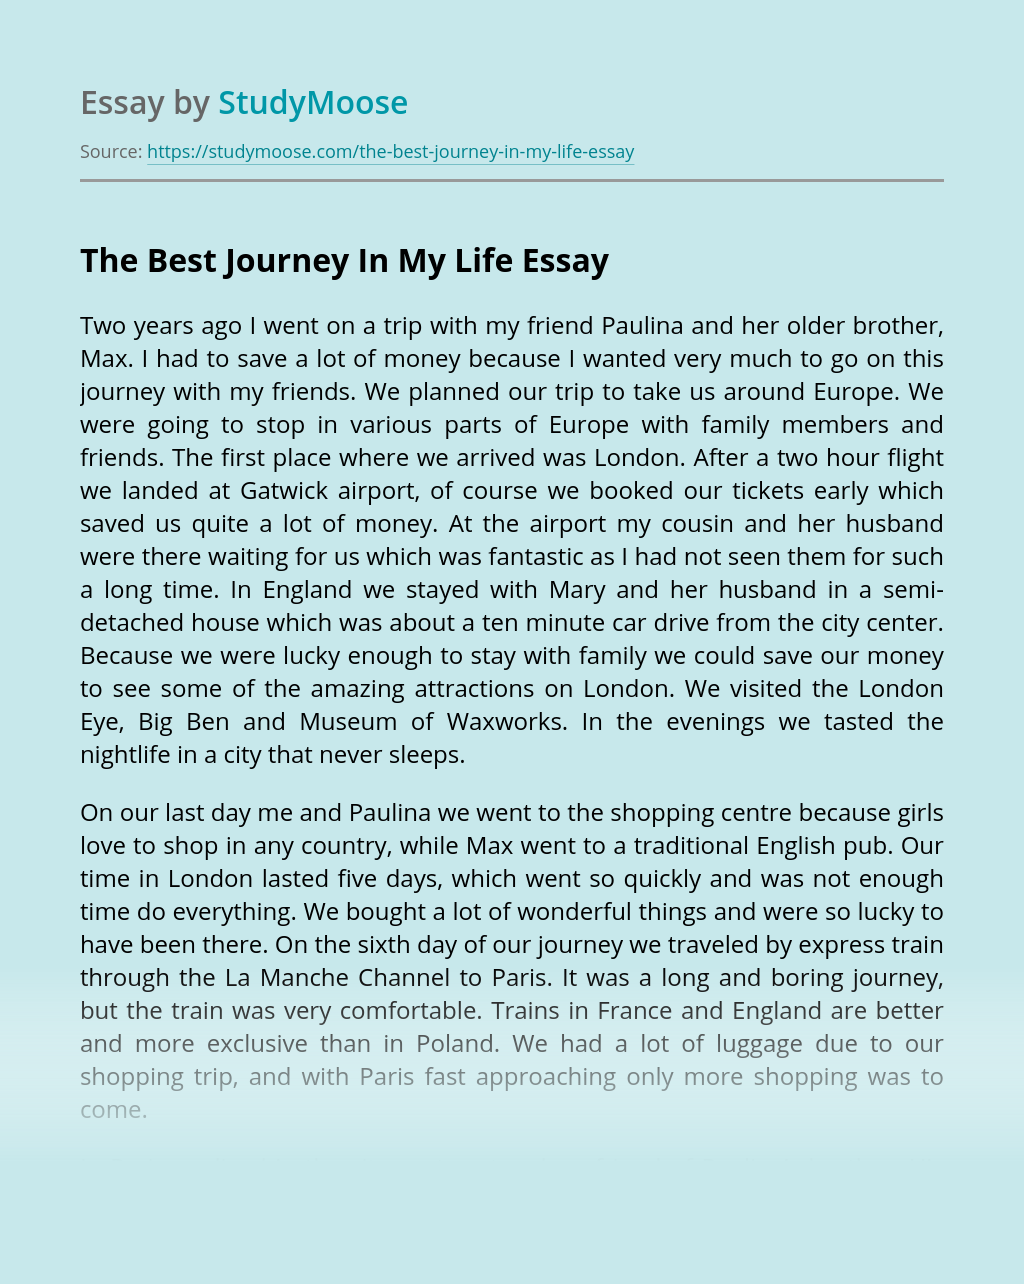 The Best Journey In My Life